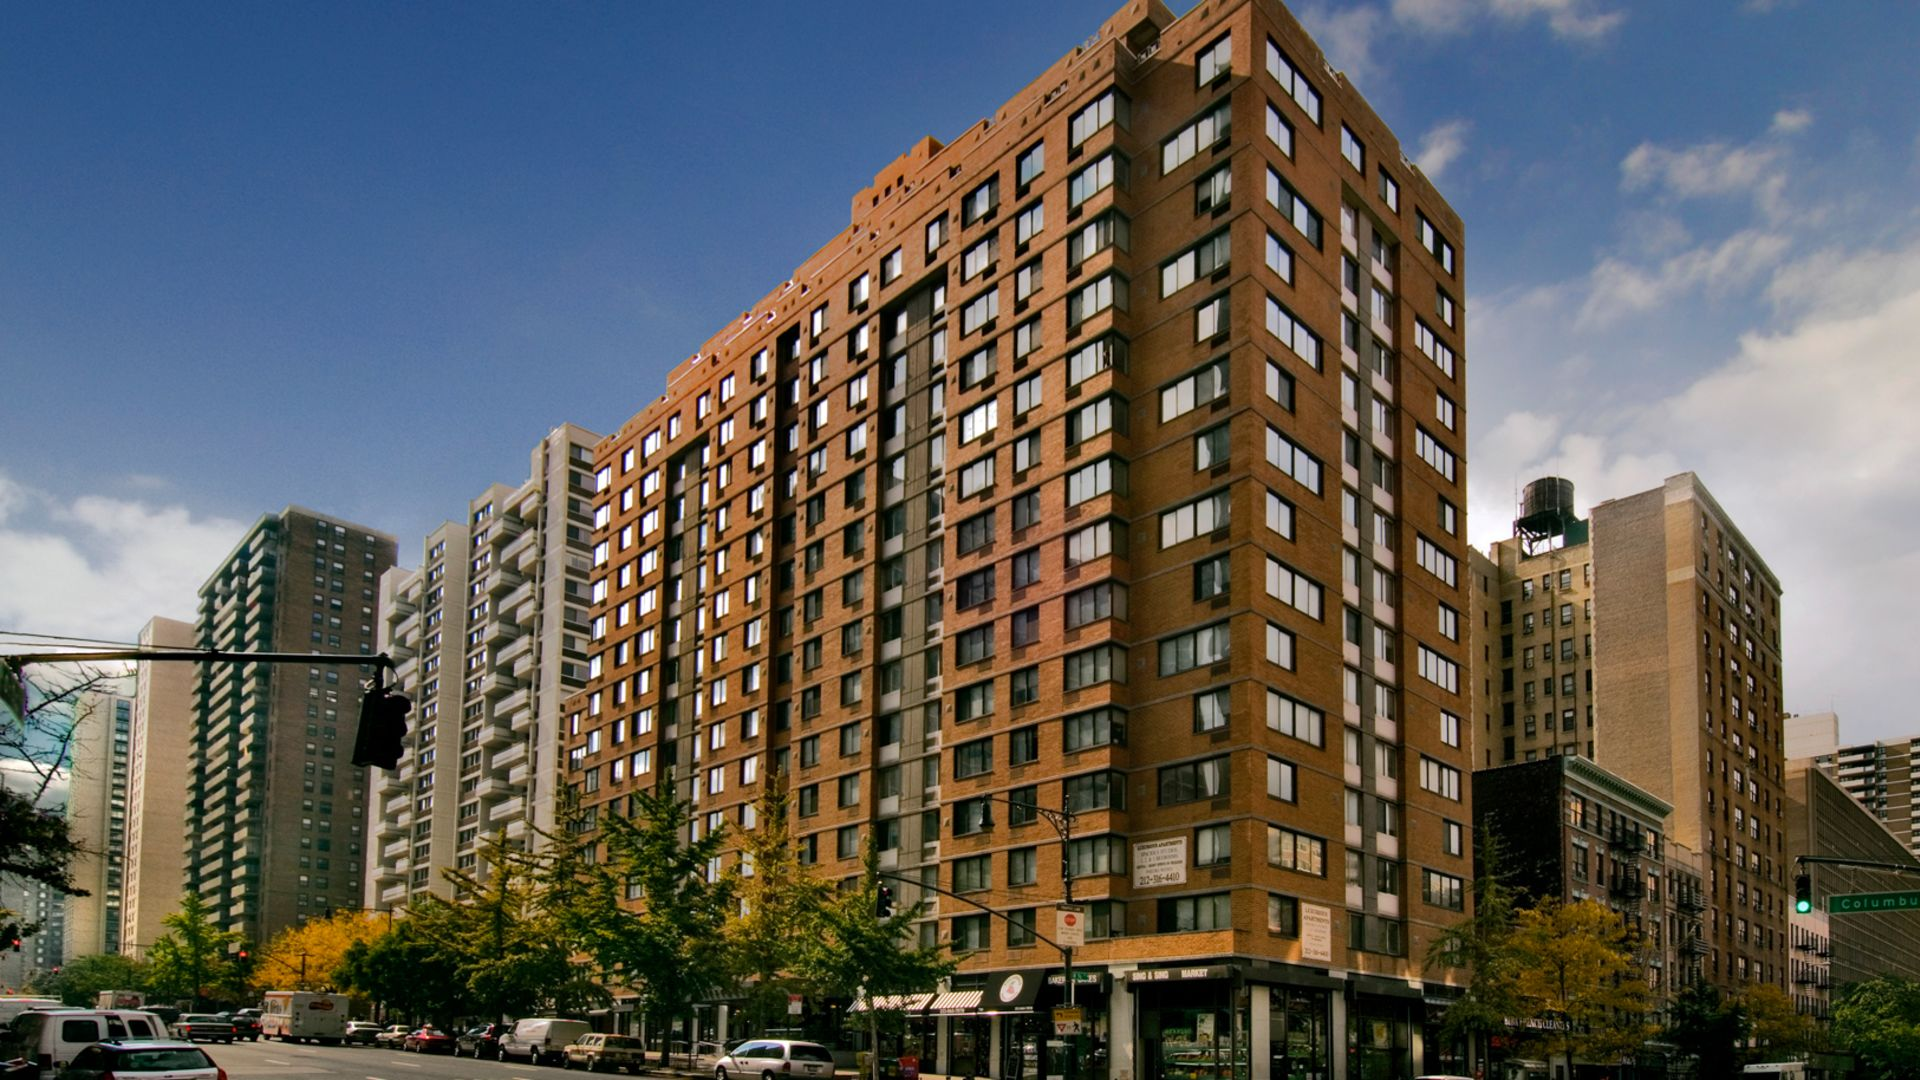 The Westmont Apartments in Upper West Side 730 Columbus Avenue